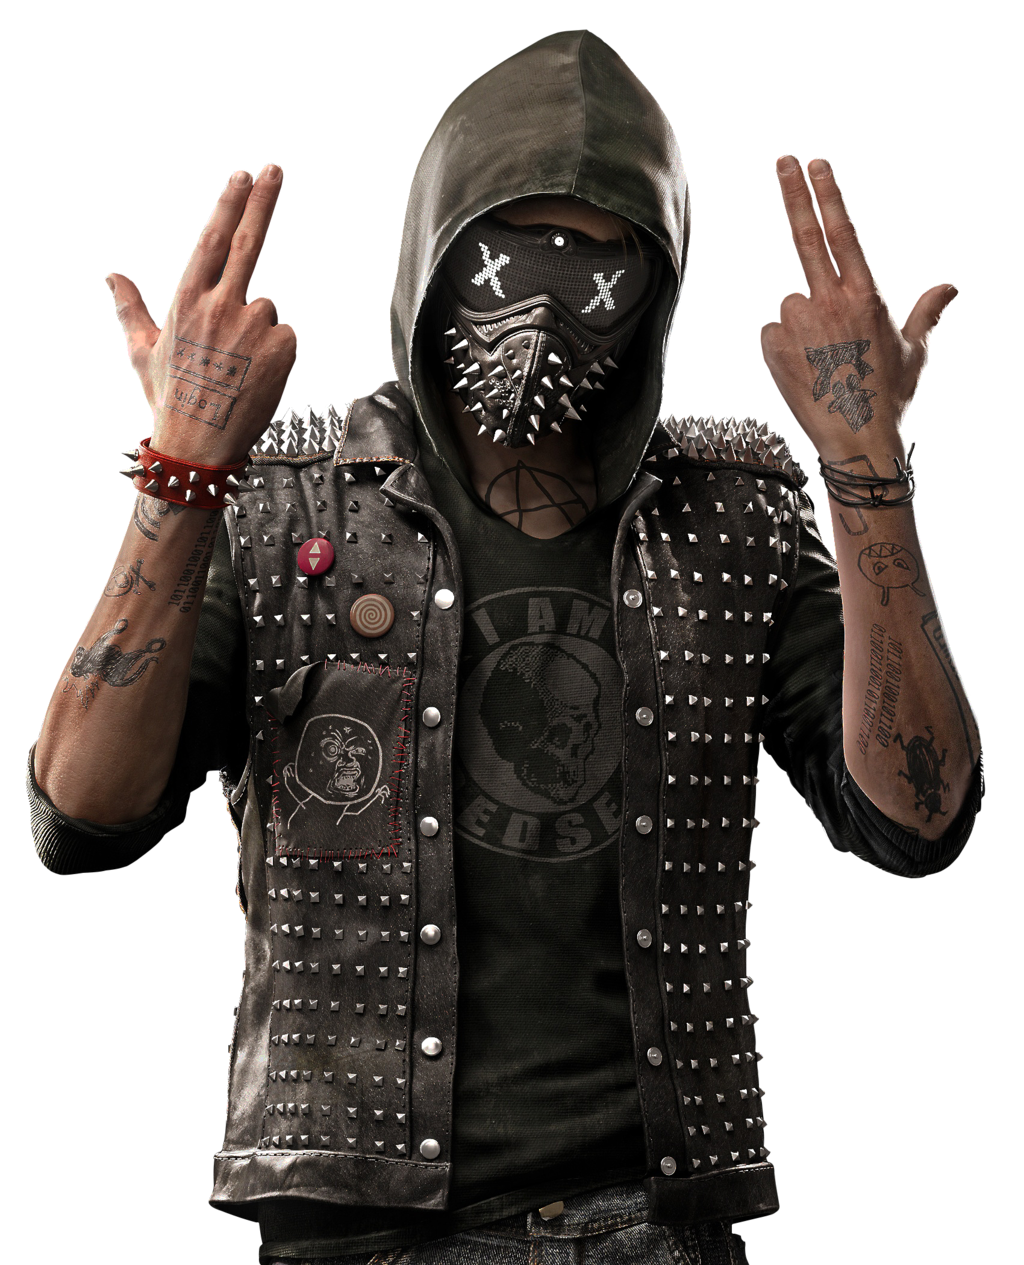 Wrench Watch Dogs Wiki Fandom